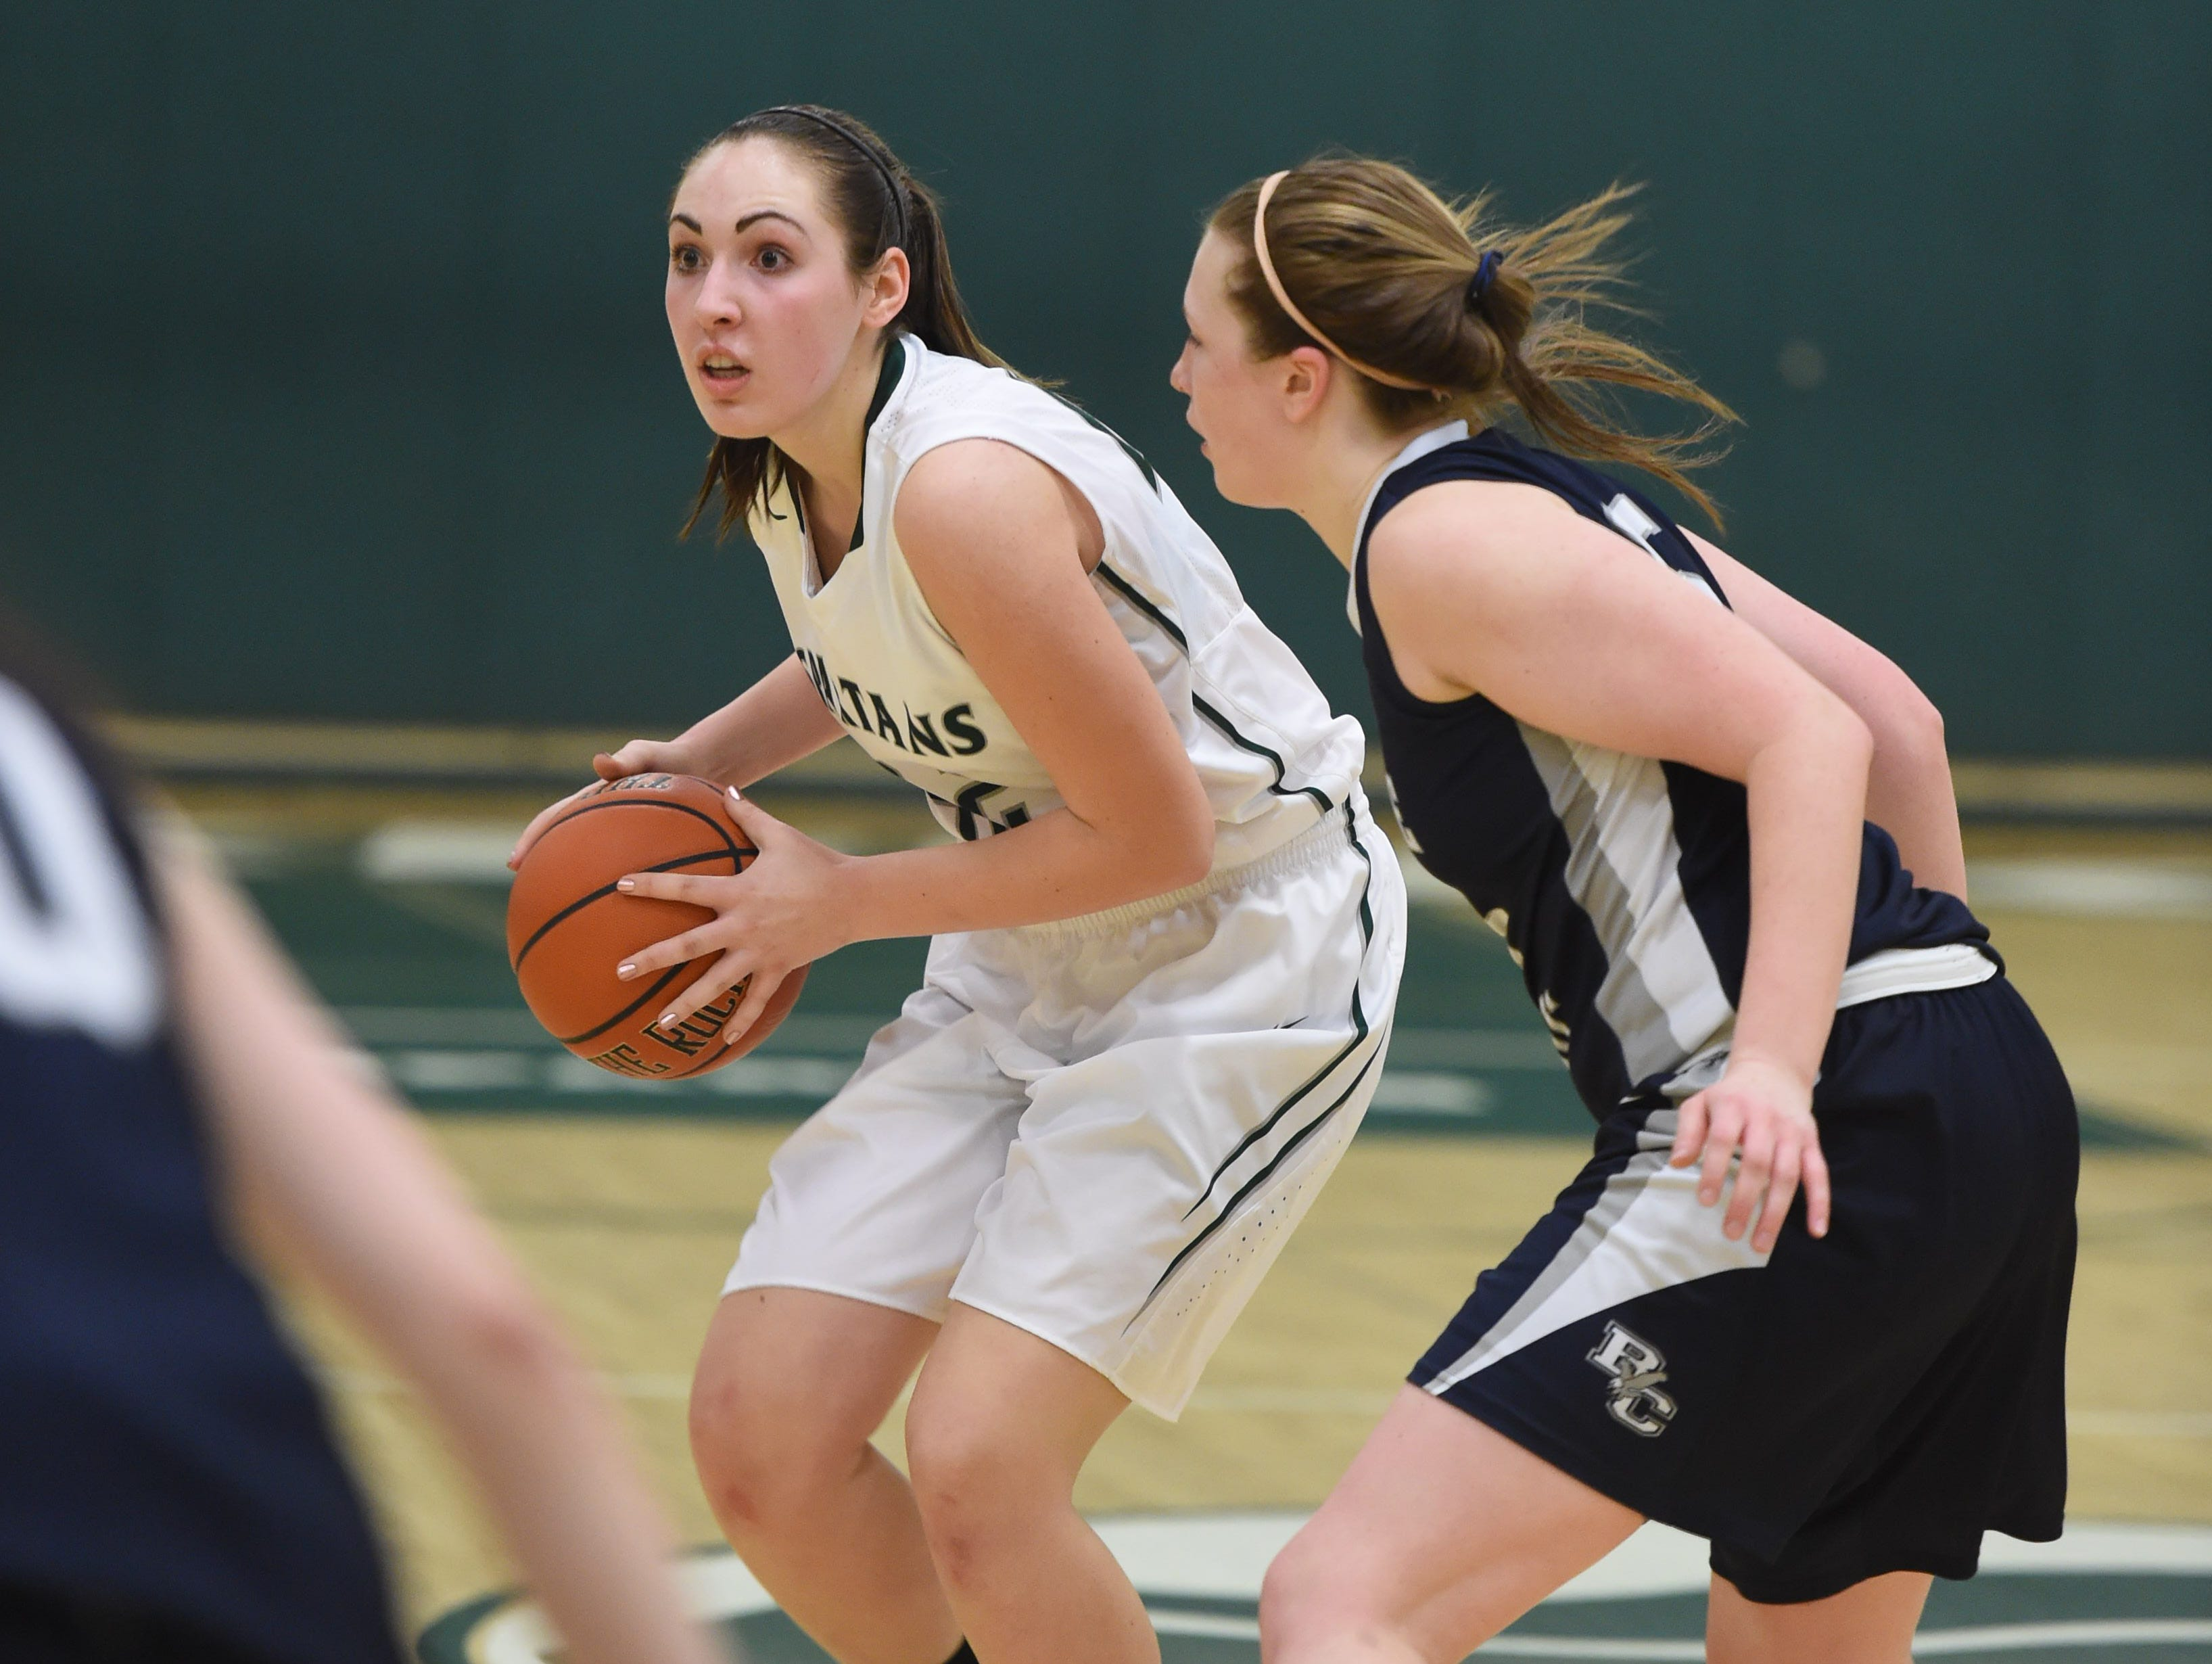 Spackenkill's Noelle Mancini is covered by Burke's Lauren Wapshare during Friday's Section 9 Class B semi-final at Spackenkill.